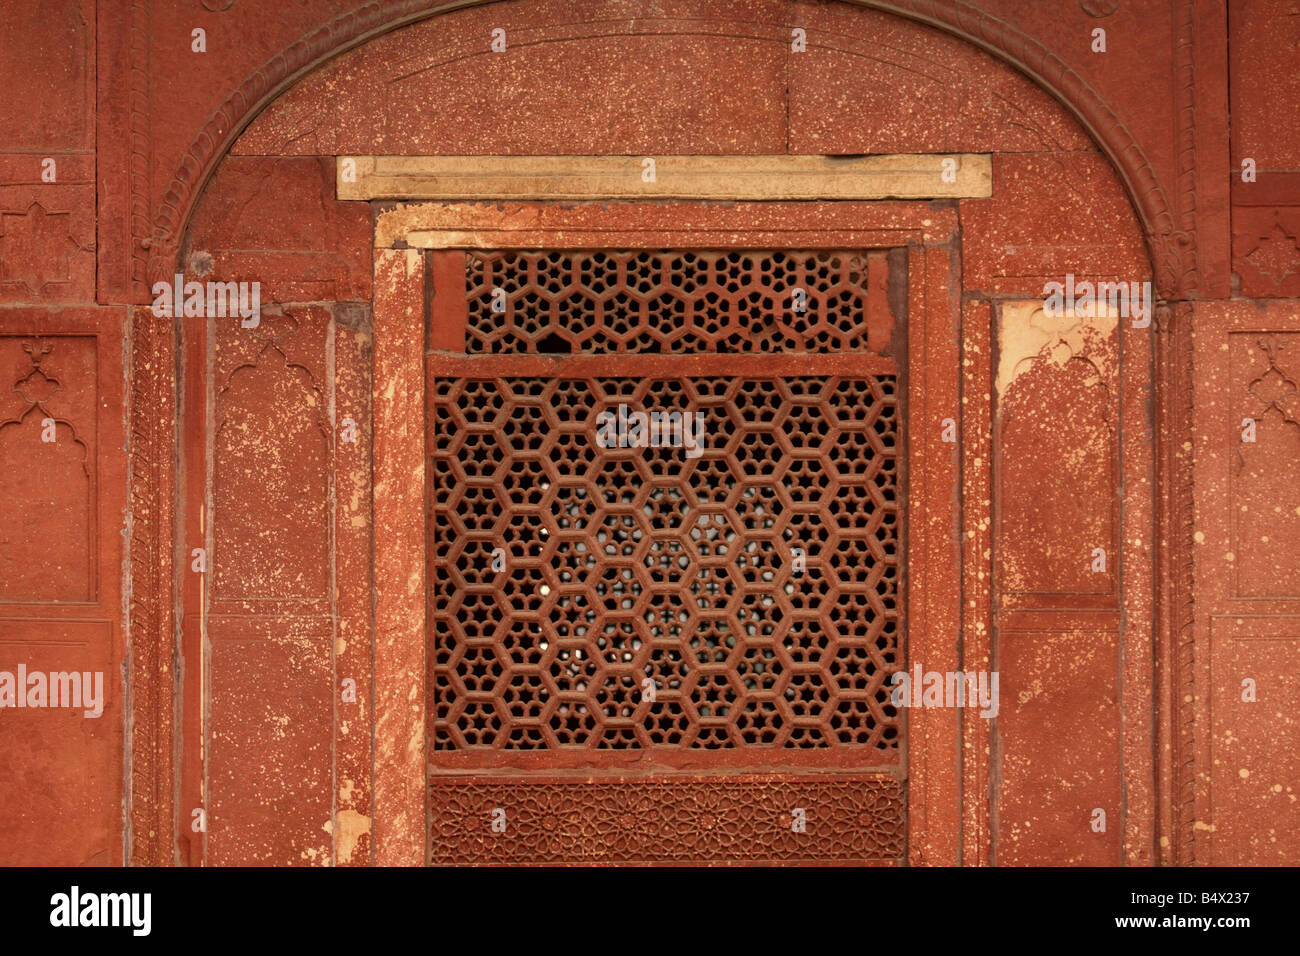 MUGHAL ARCHITECTURES IN DELHI INDIA - Stock Image